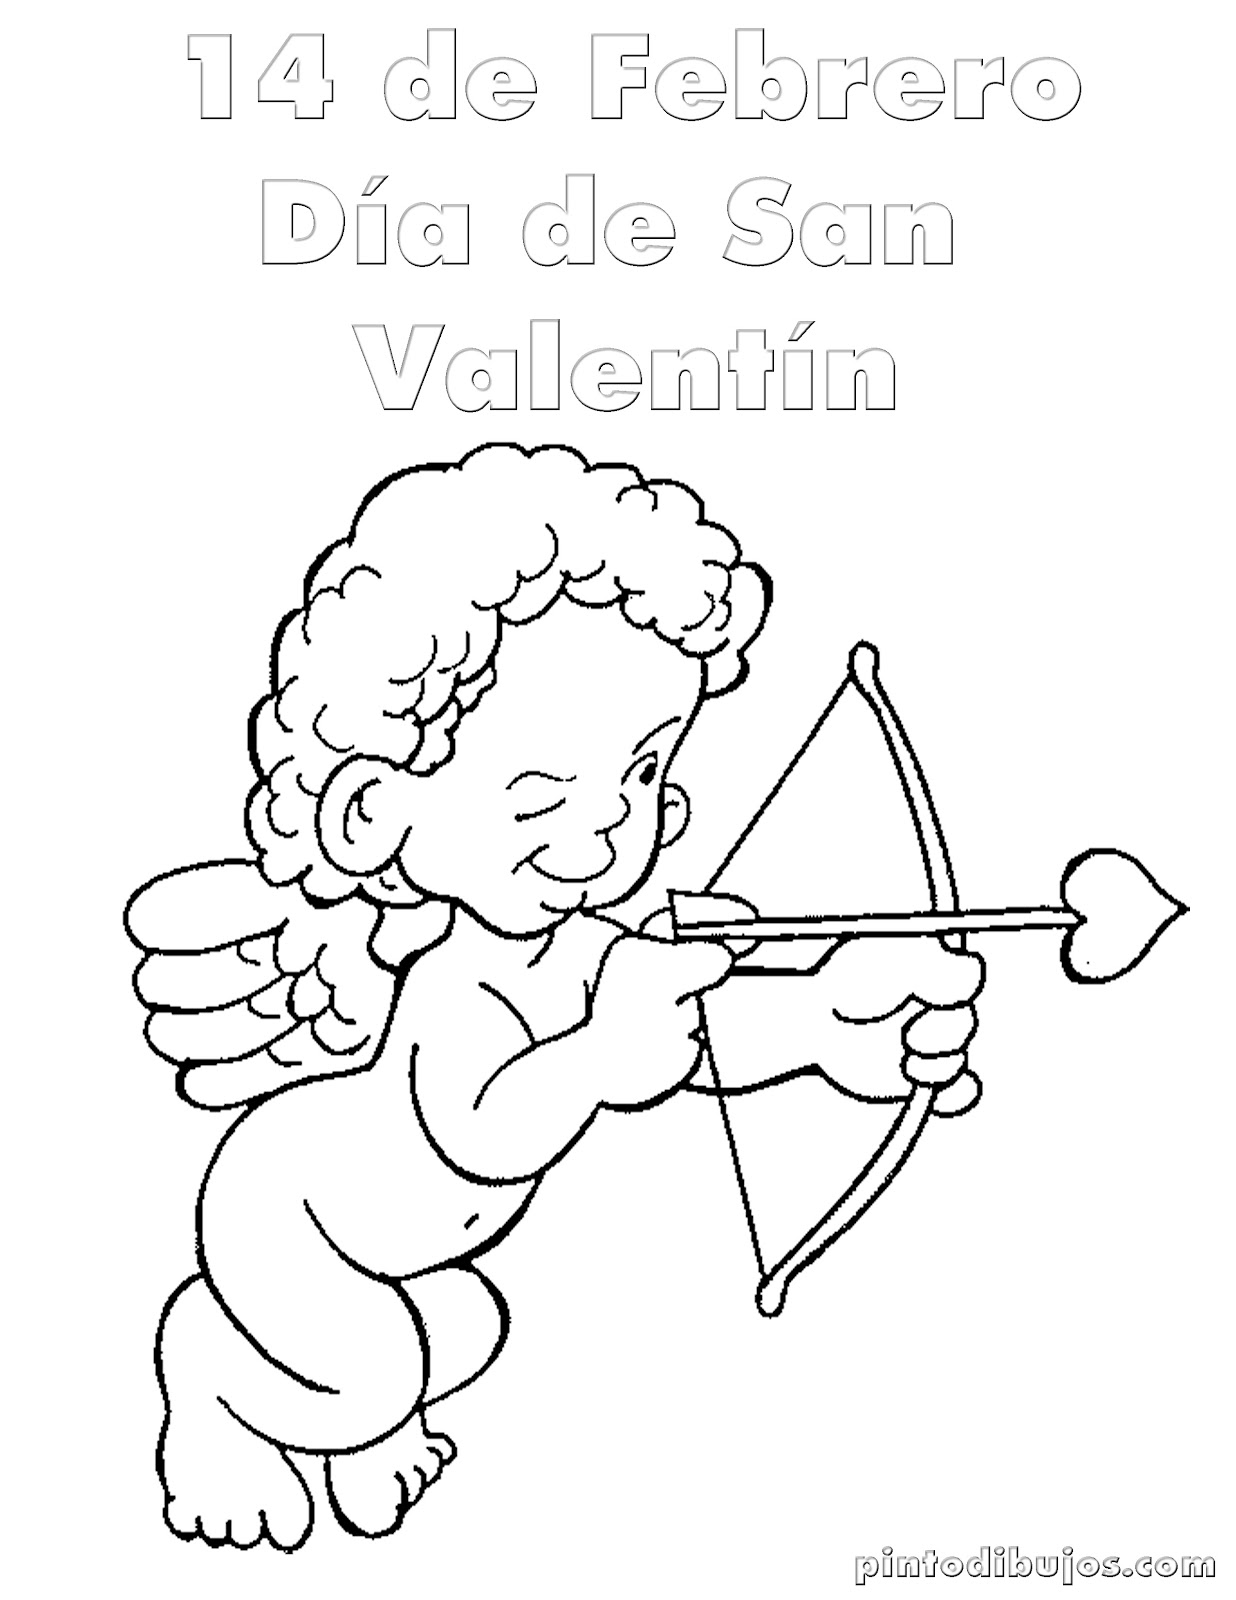 san x coloring pages - photo #31